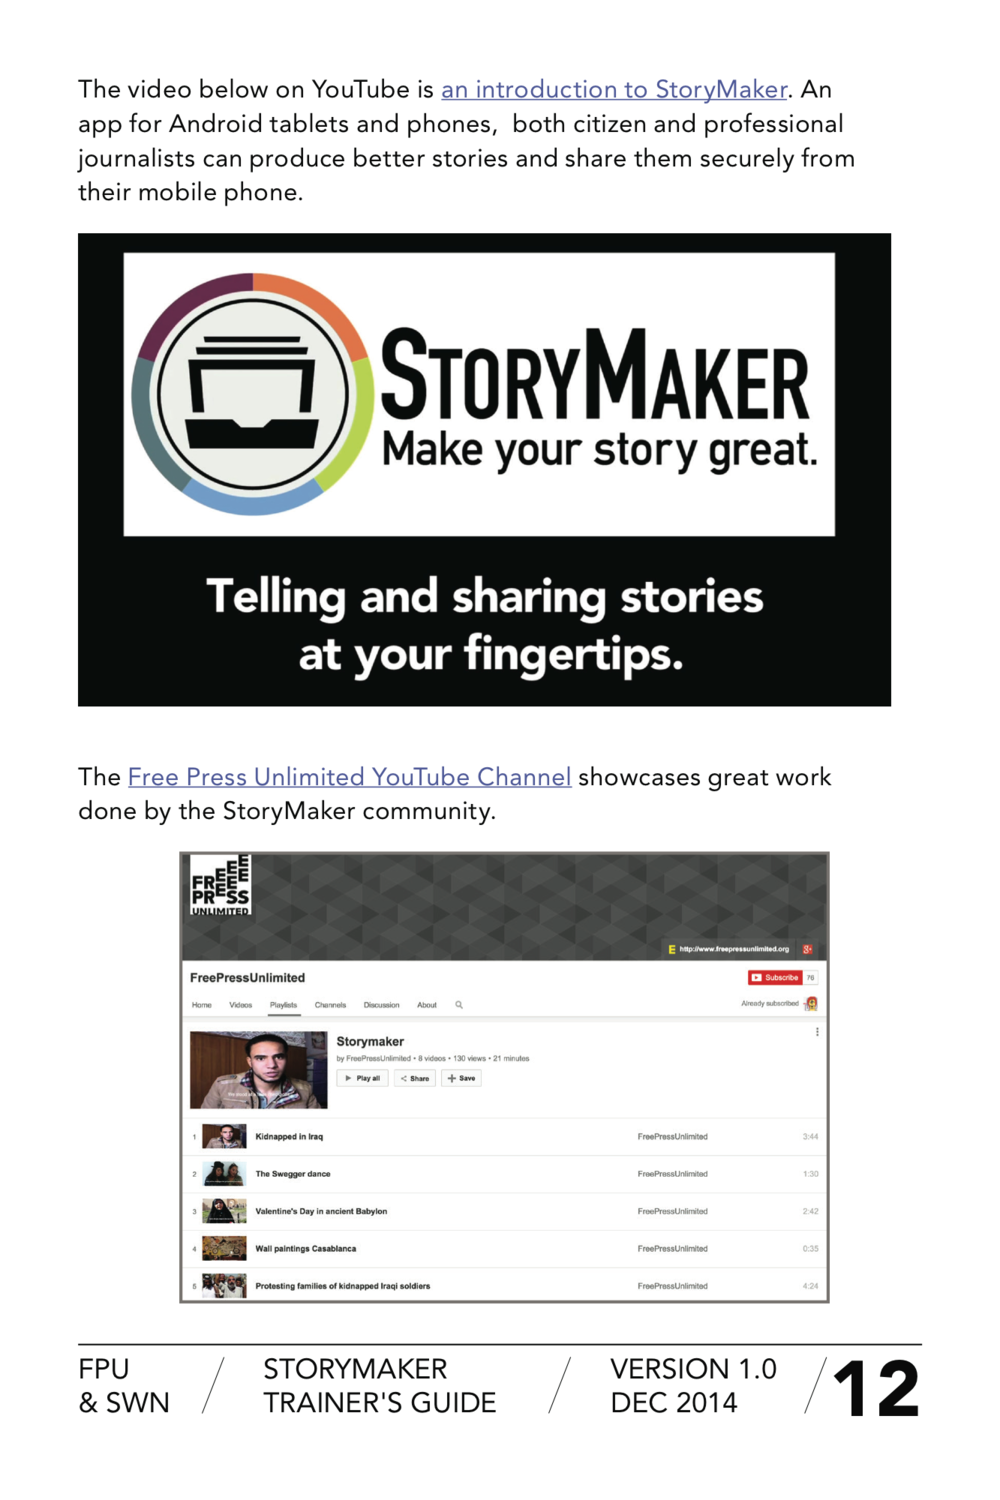 storymakertrainer 12.png